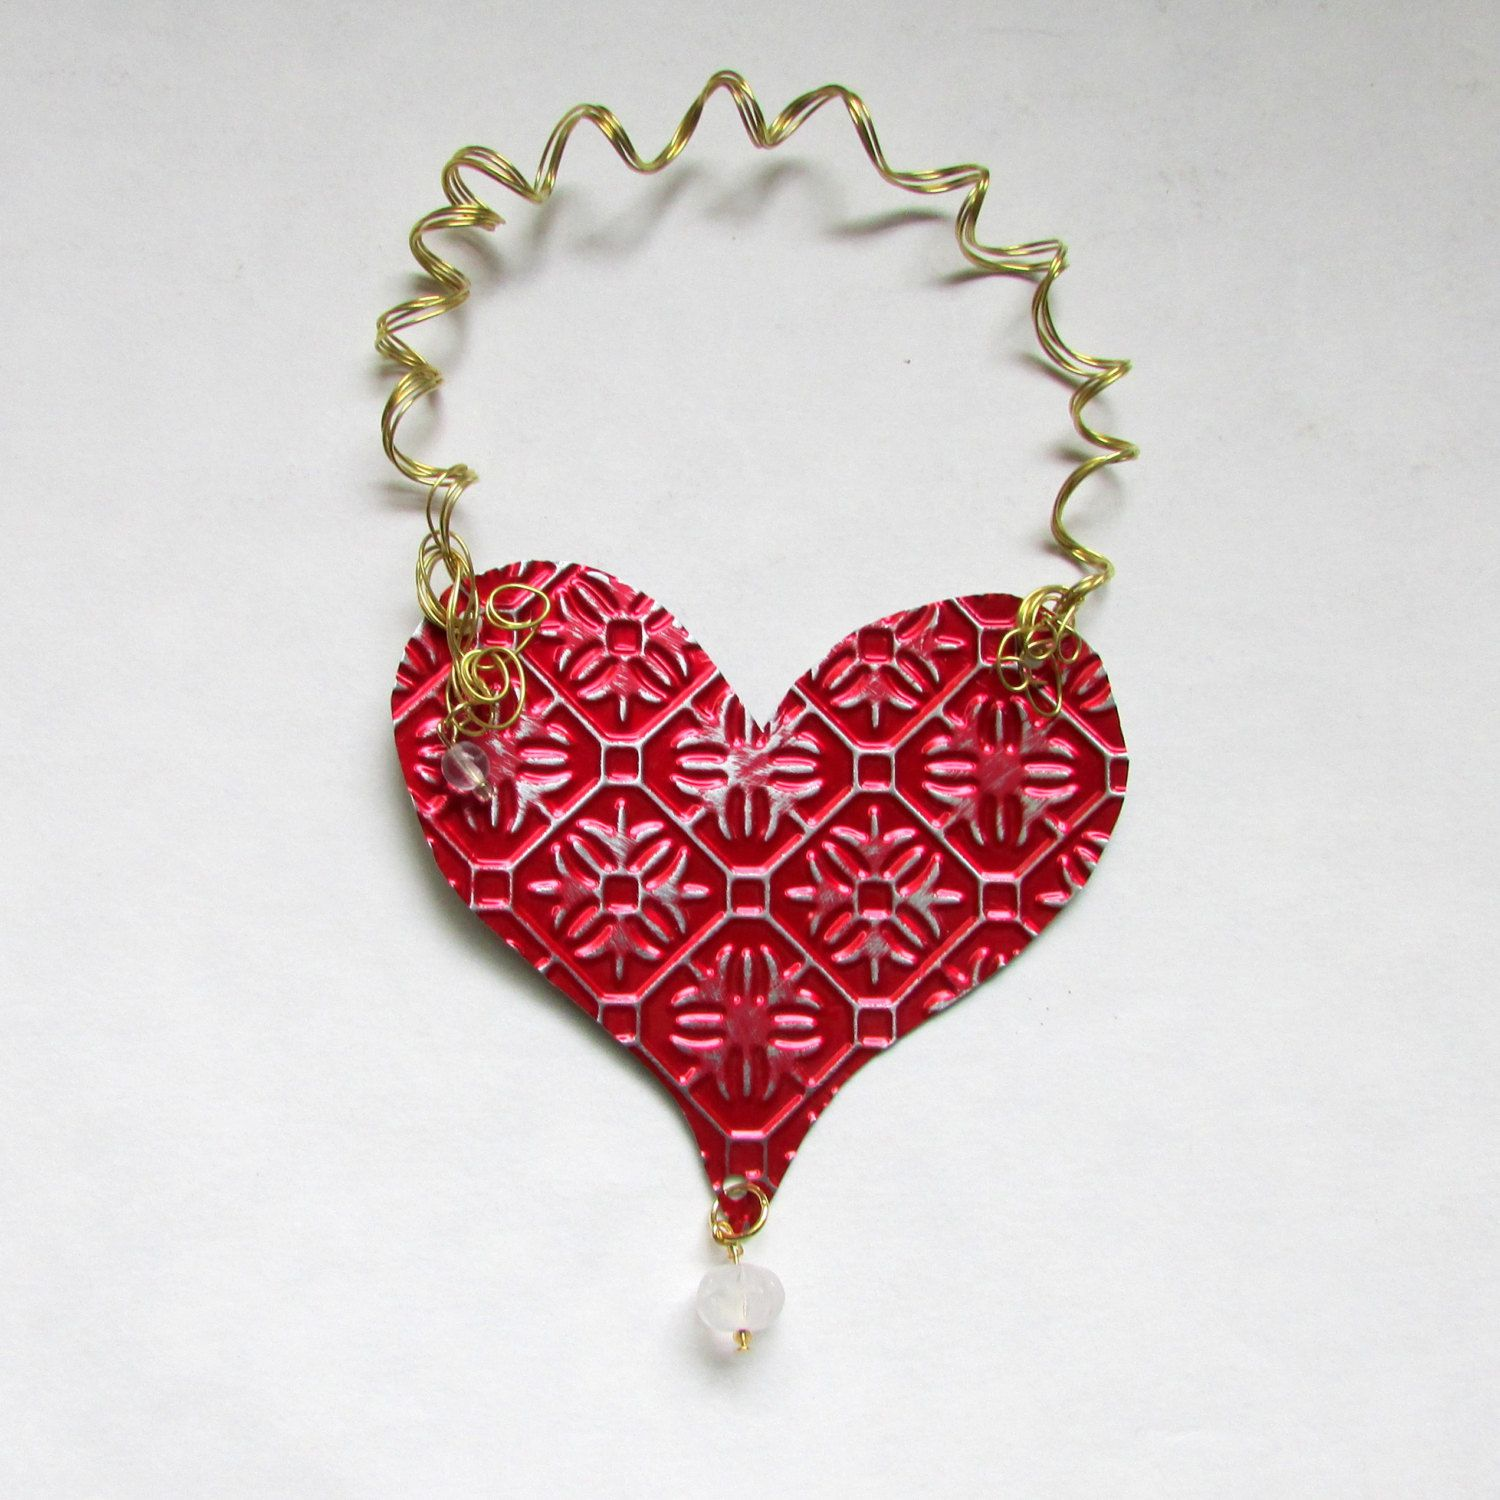 Red heart ornament metal heart ornament heart wall decor red heart ornament metal heart ornament heart wall decor valentine heart recycled amipublicfo Images